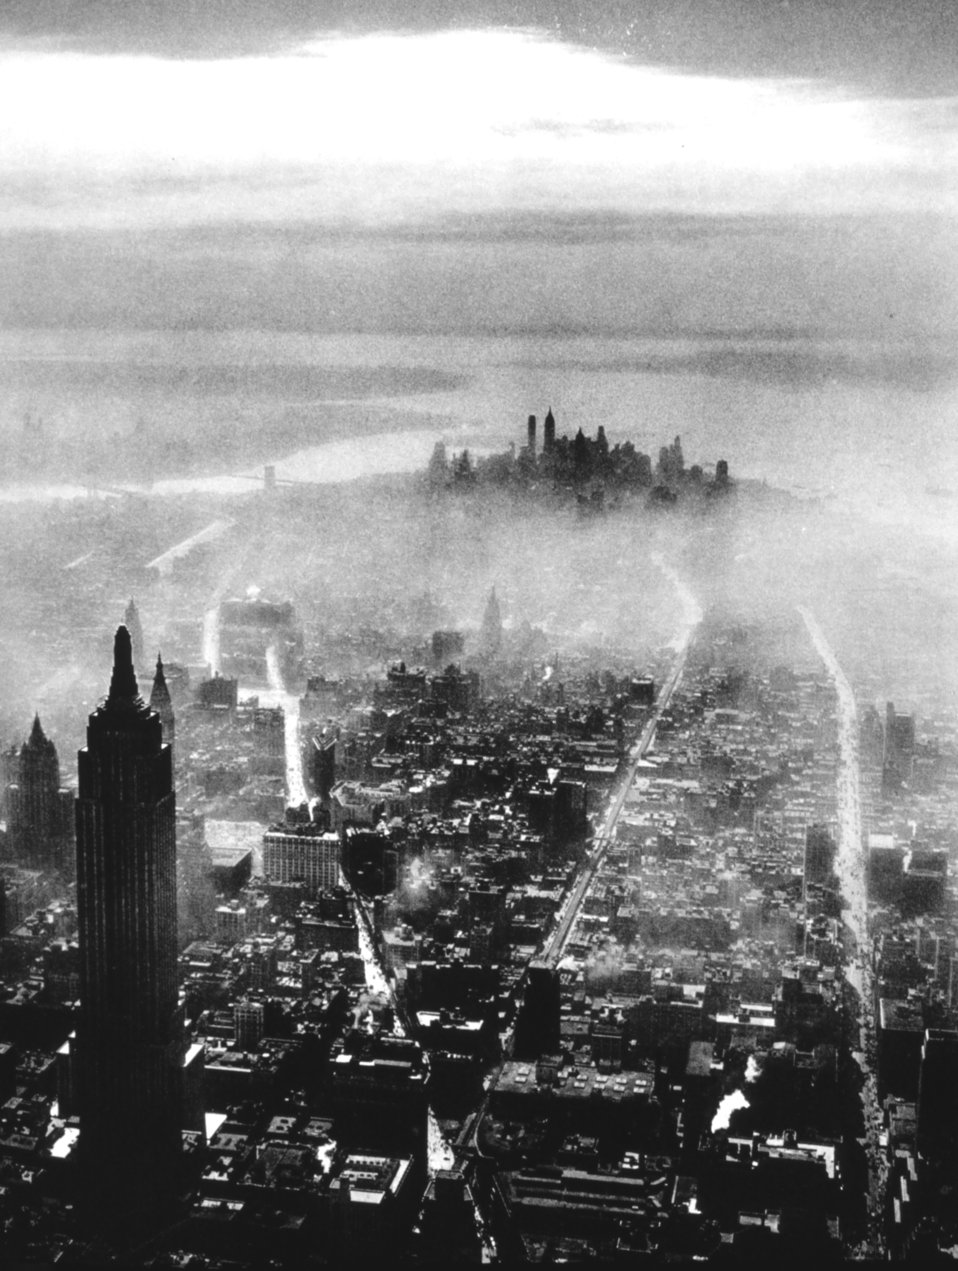 Early morning mist over New York City. Captain Alfred G. Buckham.  In: 'Flug Und Wolken', Verlag F. Bruckmann, Munchen, 1932.